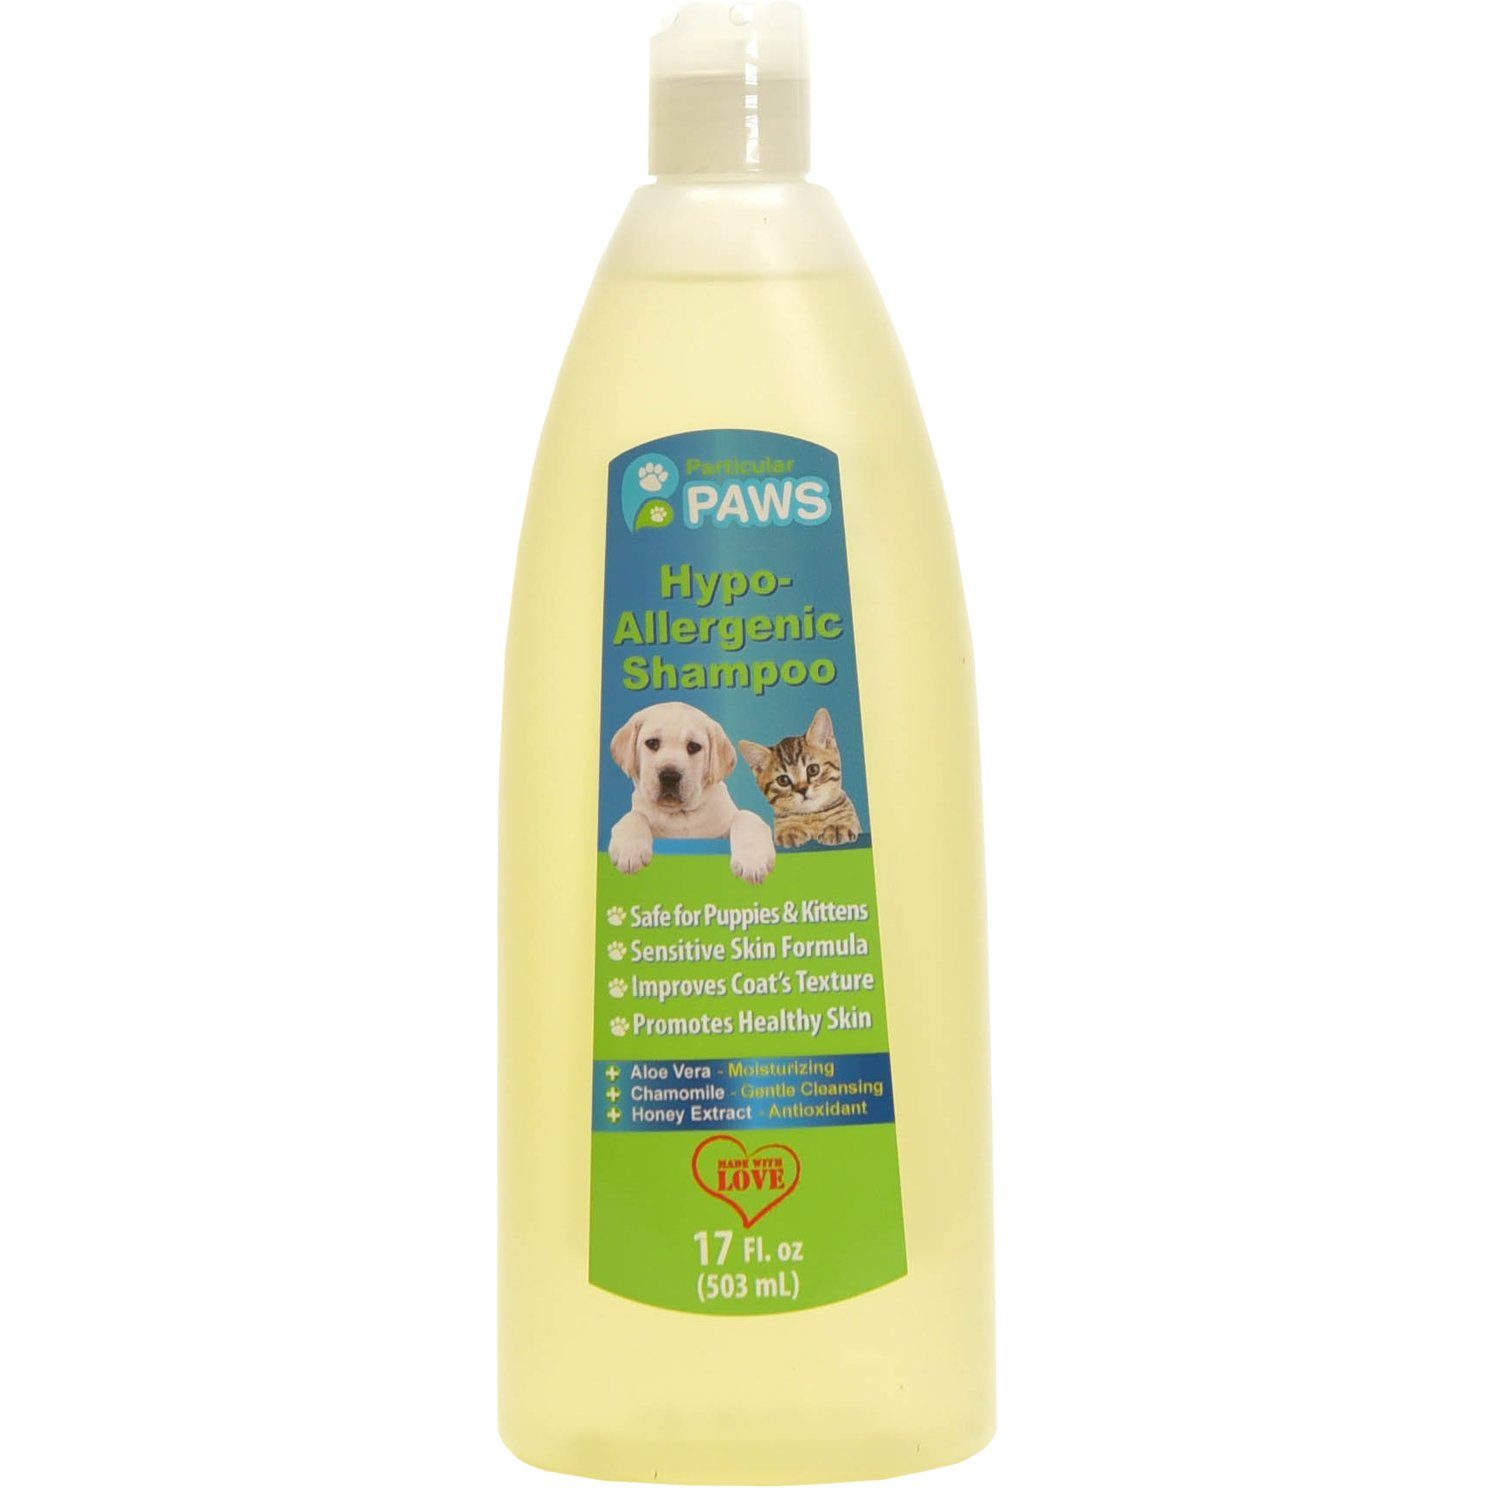 Hypoallergenic Dog and Cat Shampoo - All Natural with Aloe Vera, Chamomile & Rosemary for Sensitive and Young Skin - 17 oz by Particular Paws